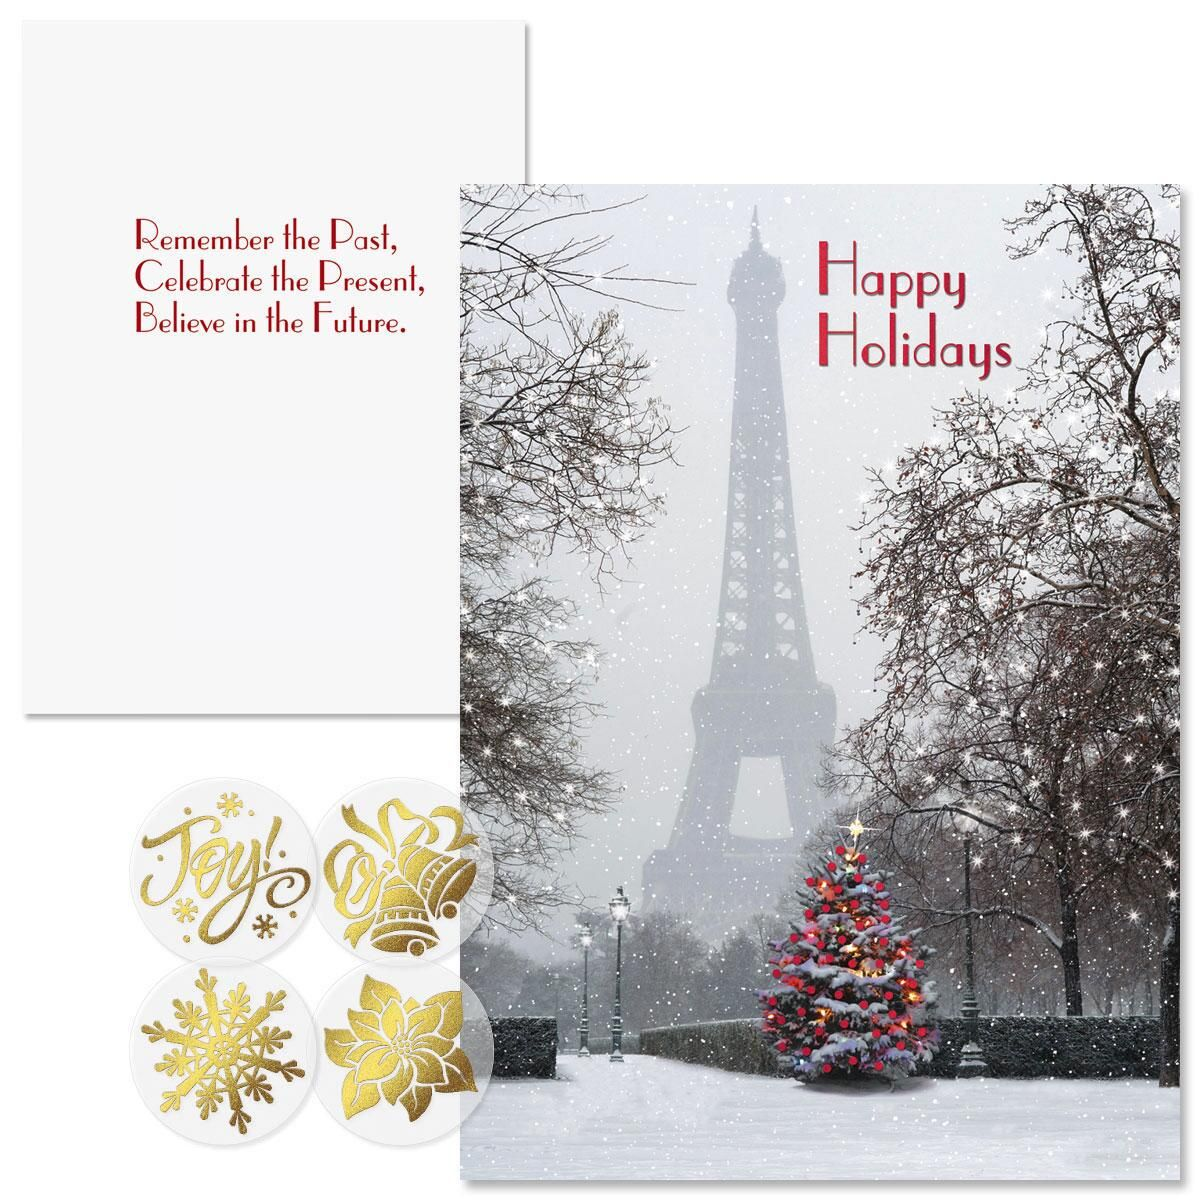 Paris in the Snow Foil Christmas Cards -  Nonpersonalized